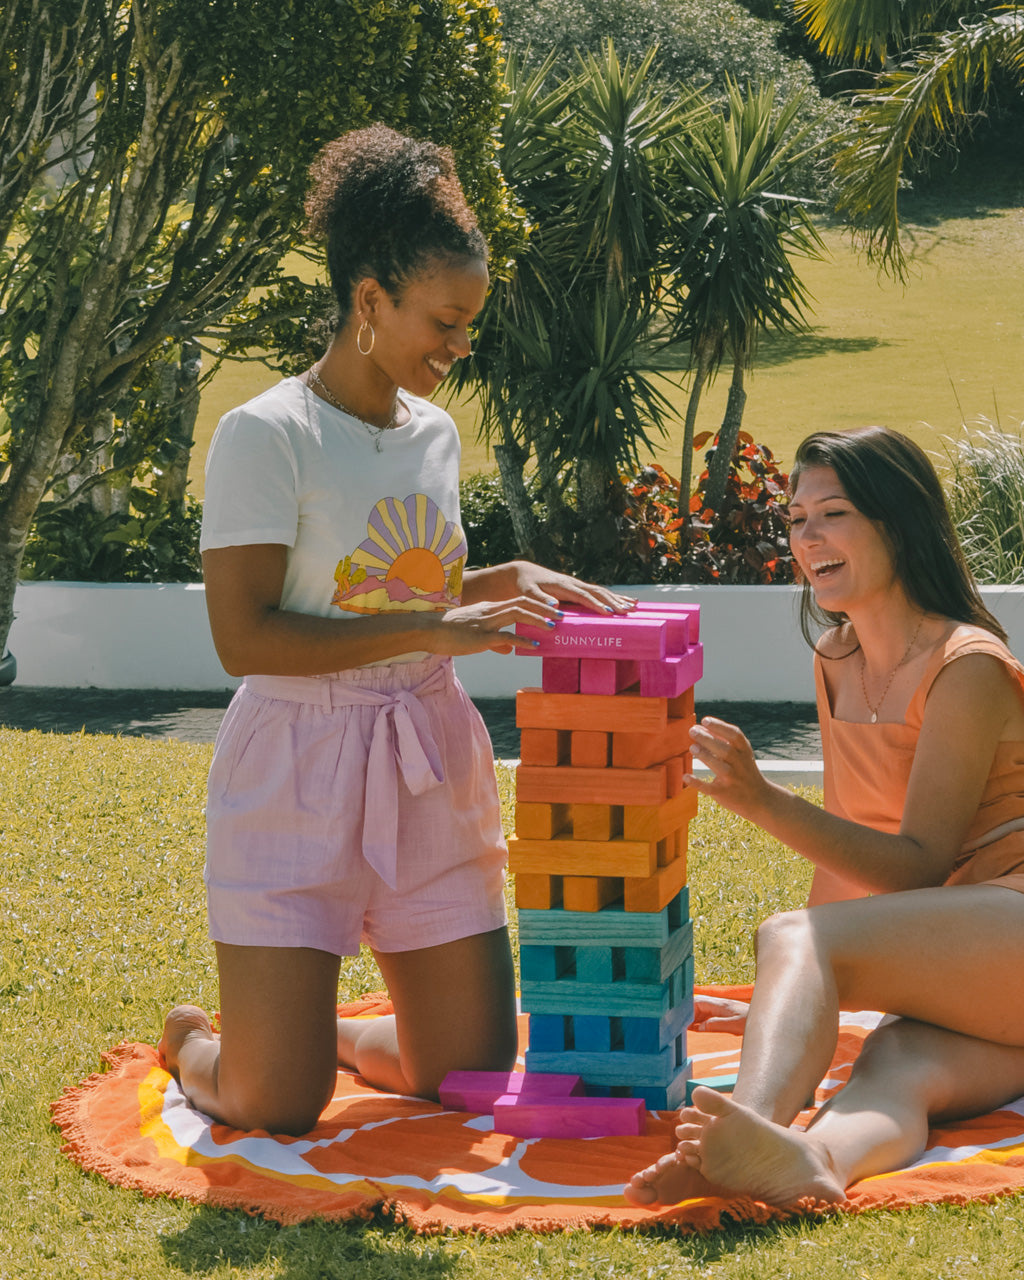 women playing with giant wooden jumbling tower on orange towel